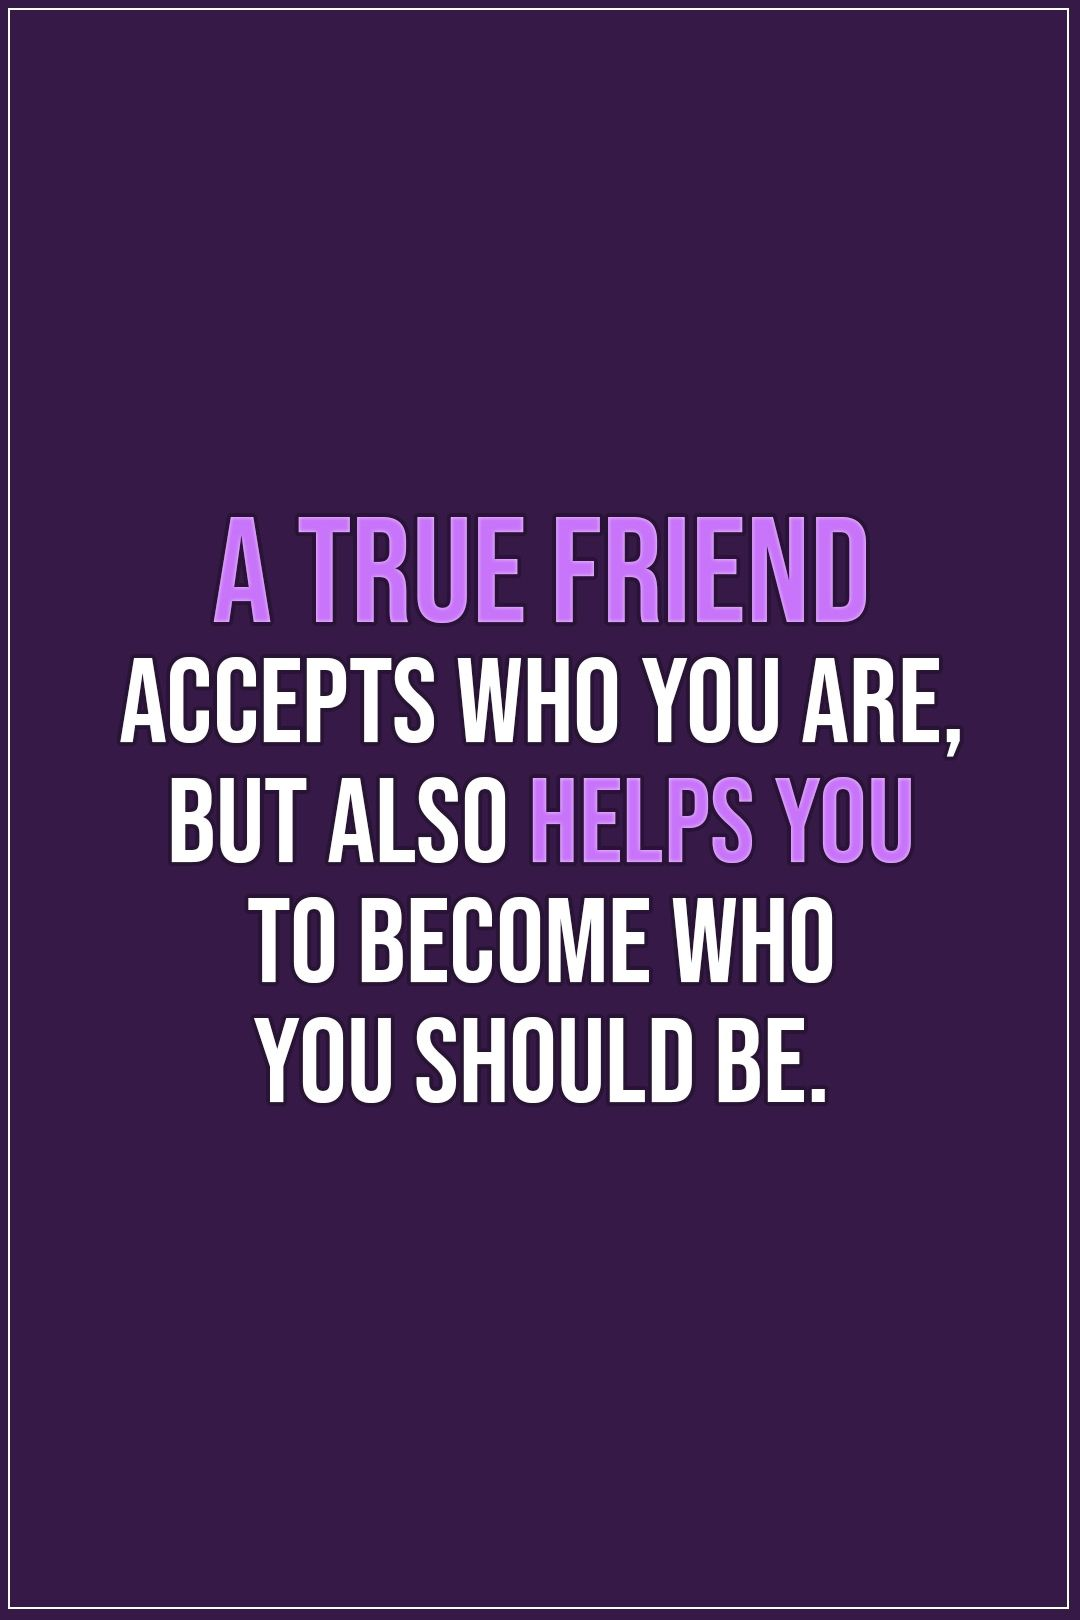 20+ Best 'Friendship' Quotes is part of Friendship quotes -  Browse the handpicked collection of the top friendship quotes and sayings  Quotes about the magic of relationship between friends